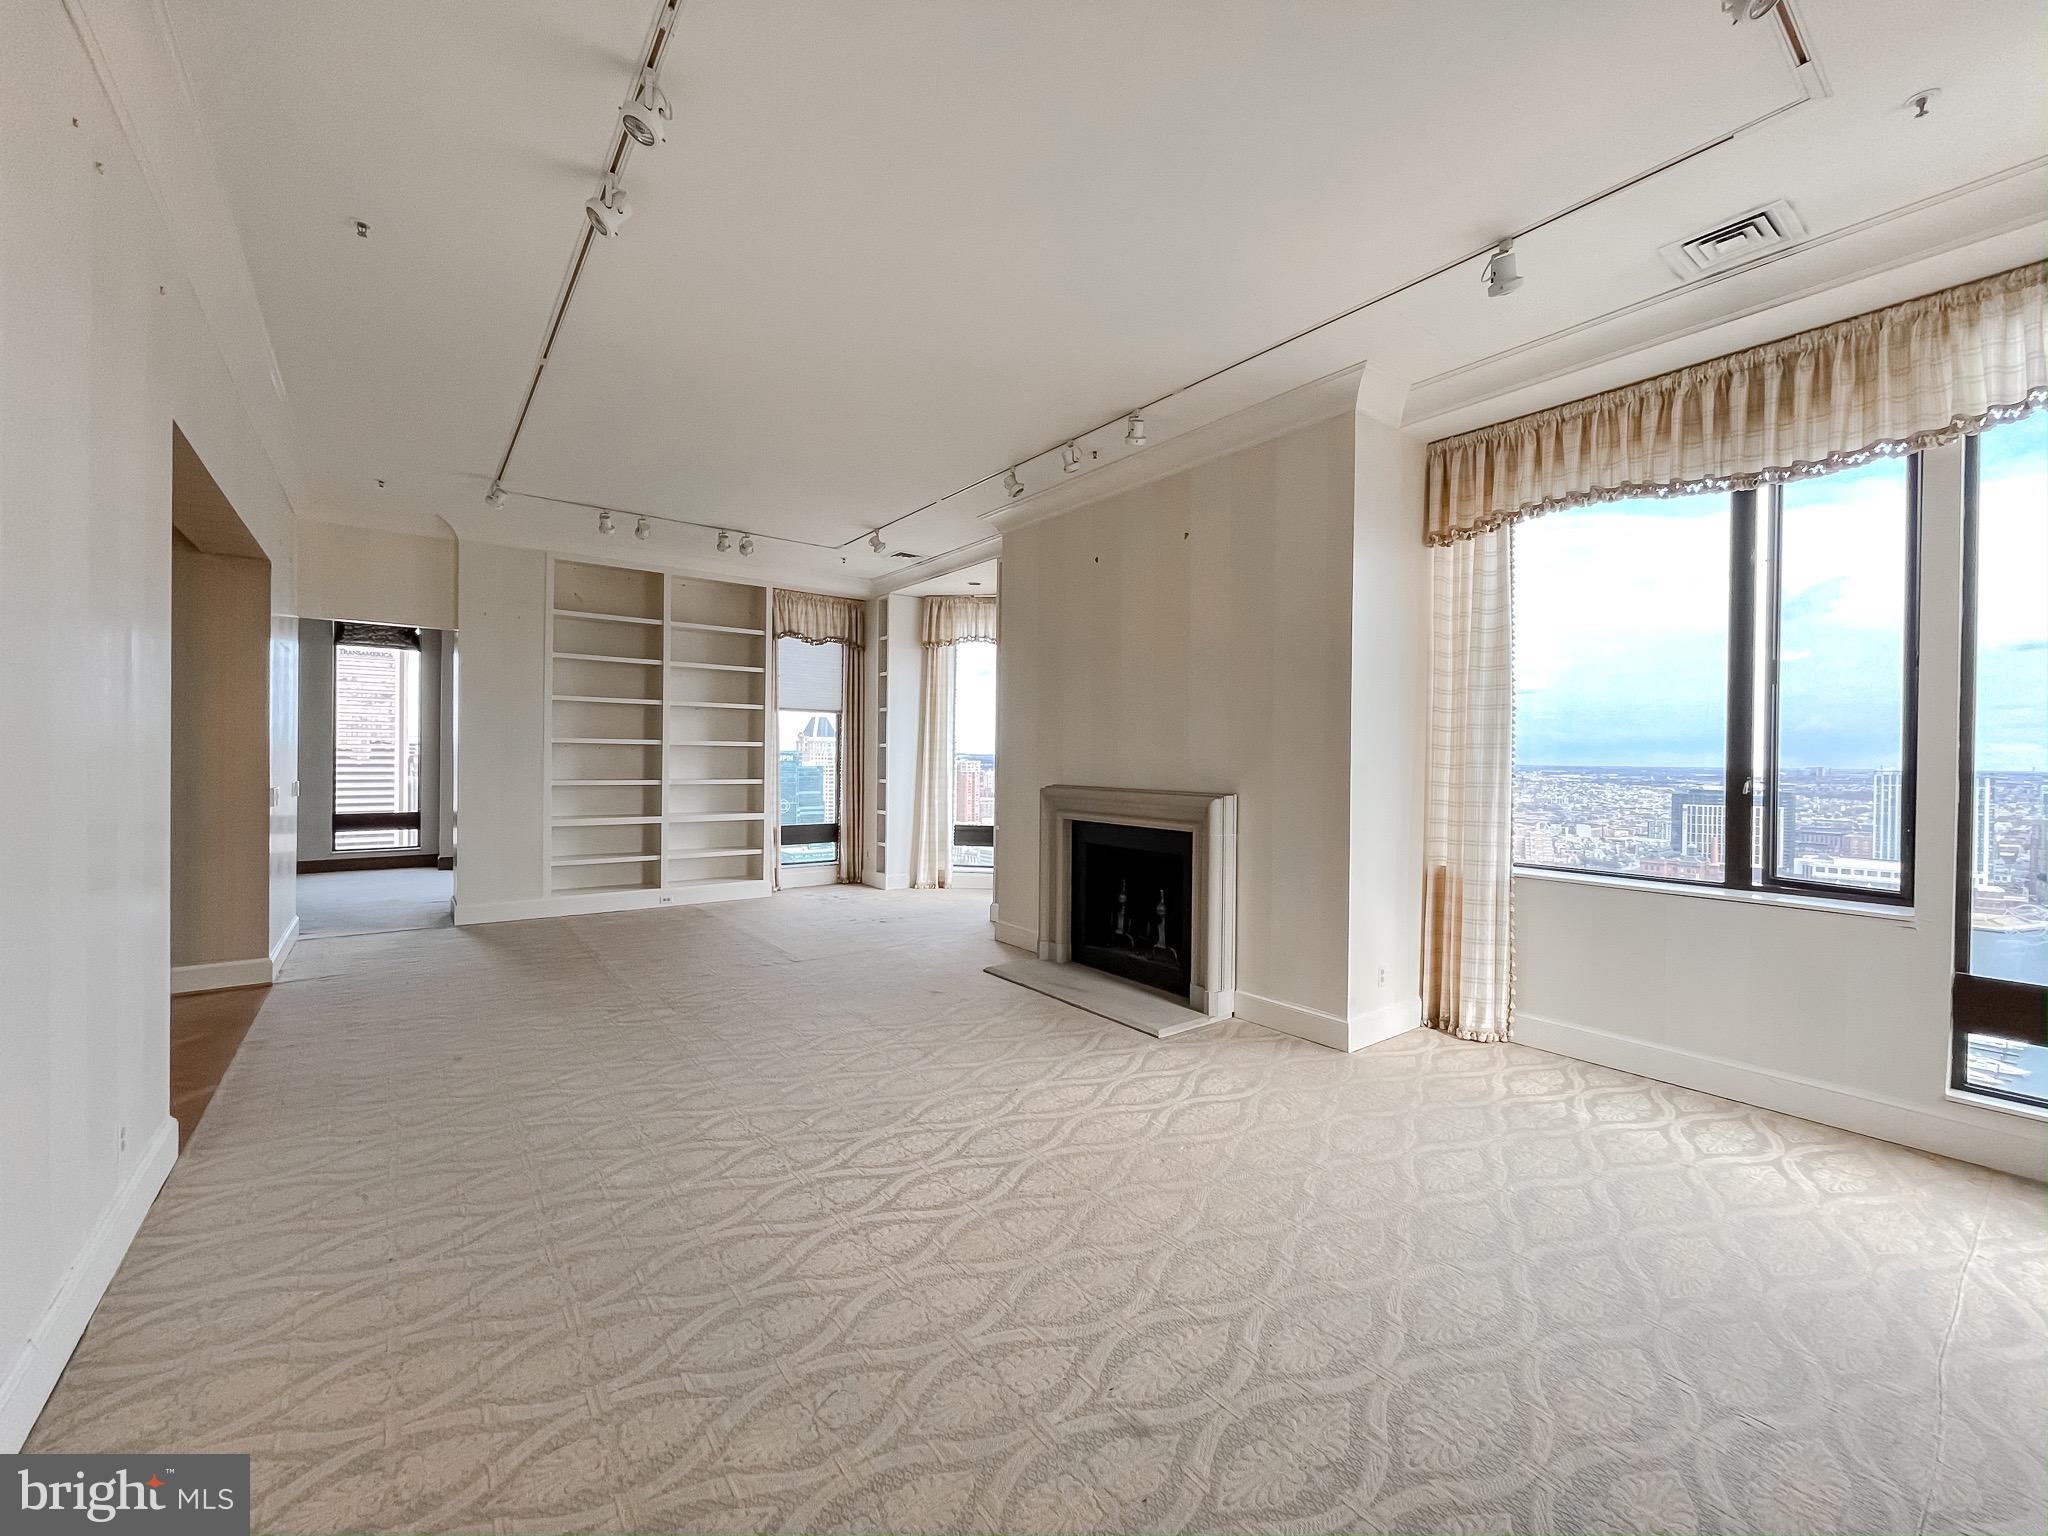 With arguably the best views in all of Baltimore City, this luxury penthouse has incredible vistas of the Inner Harbor from the 29th floor of the Towers at Harbor Court. 12 ft. tall ceilings. 2 bed / 3.5 bath. At nearly 3,000 sq. feet, this unit features an incredibly spacious living room, two wood burning fireplaces, and a master suite with separate dressing rooms and two full baths. 2 assigned parking spaces. Building amenities include 24/7 front desk concierge, uniformed doorman, porters and maintenance staff, guest suite, on-site management, and security. Amenities provided by the attached hotel include a bar/lounge, fitness center, concierge, coffee shop/convenience store.  Property being sold as-is.  Bring your decorator and imagination - price reflects need for updating.